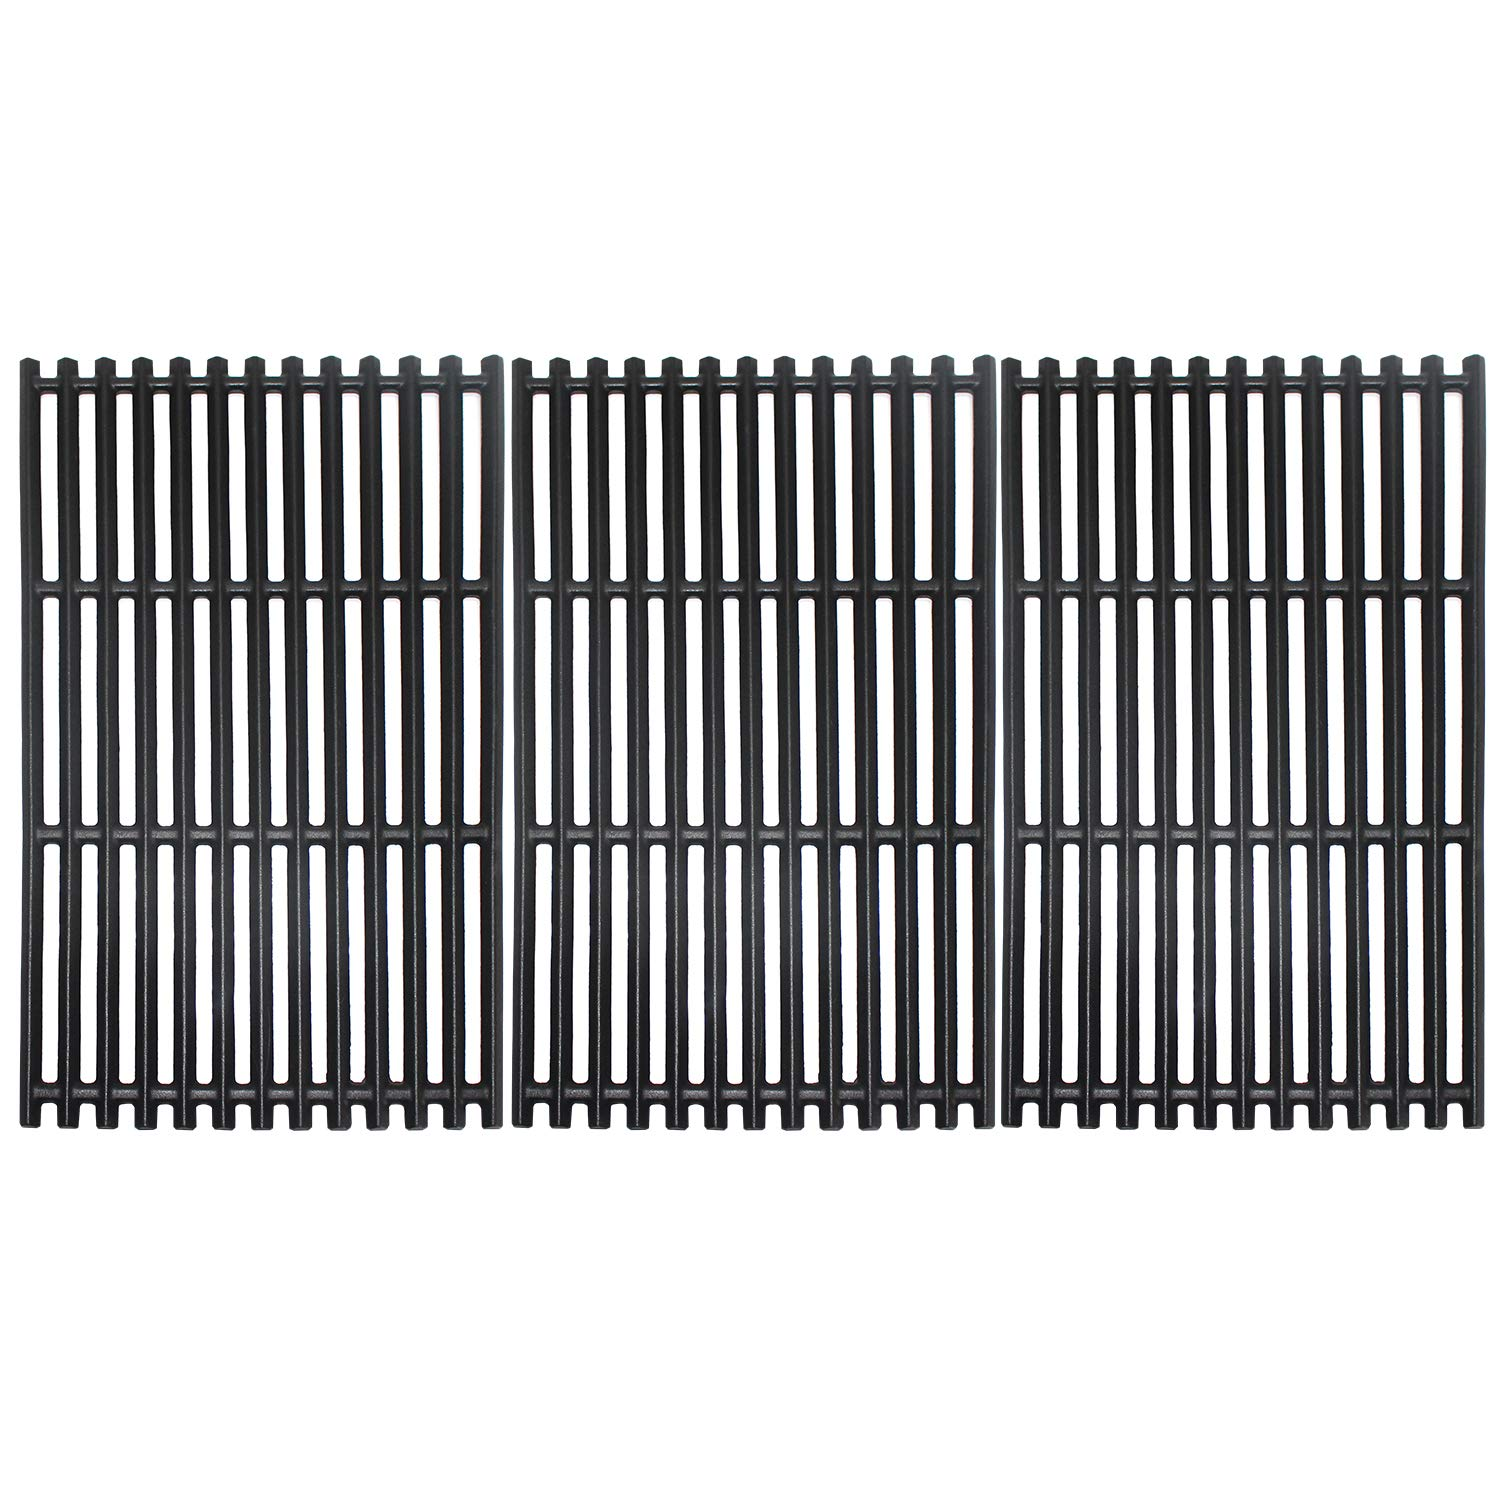 MikeGarden 17 Inch Grates G533-0009-W1A for Charbroil 463276016, 463242715, 463242716, Walmart # 555179228, 466242715, 466242815,17 X 28 1/2'' Matte Enamel Cast Iron Grates by MikeGarden